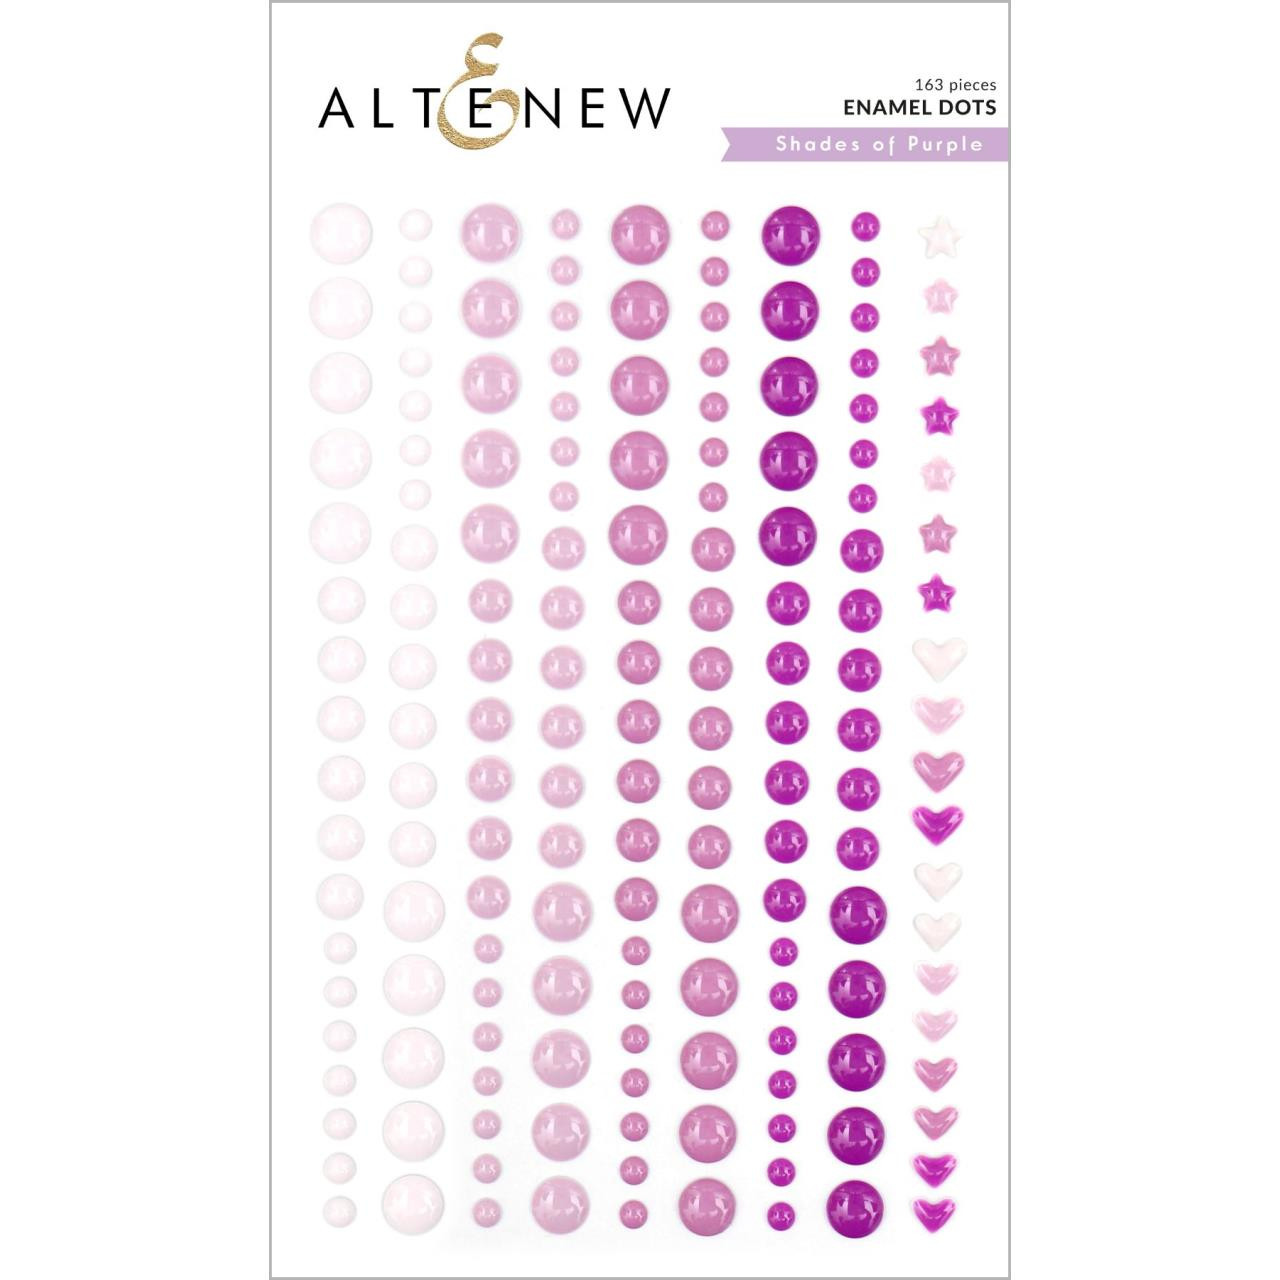 Shades of Purple, Altenew Enamel Dots - 737787258071